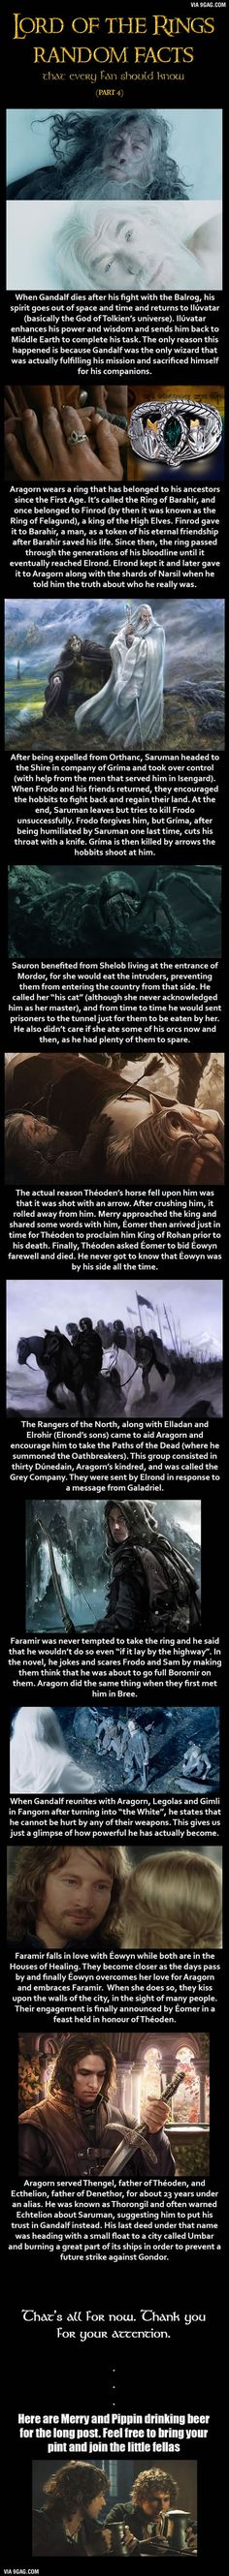 Here are some Lord of the Rings random facts... hechos que un lector de los libros sabría sin duda...